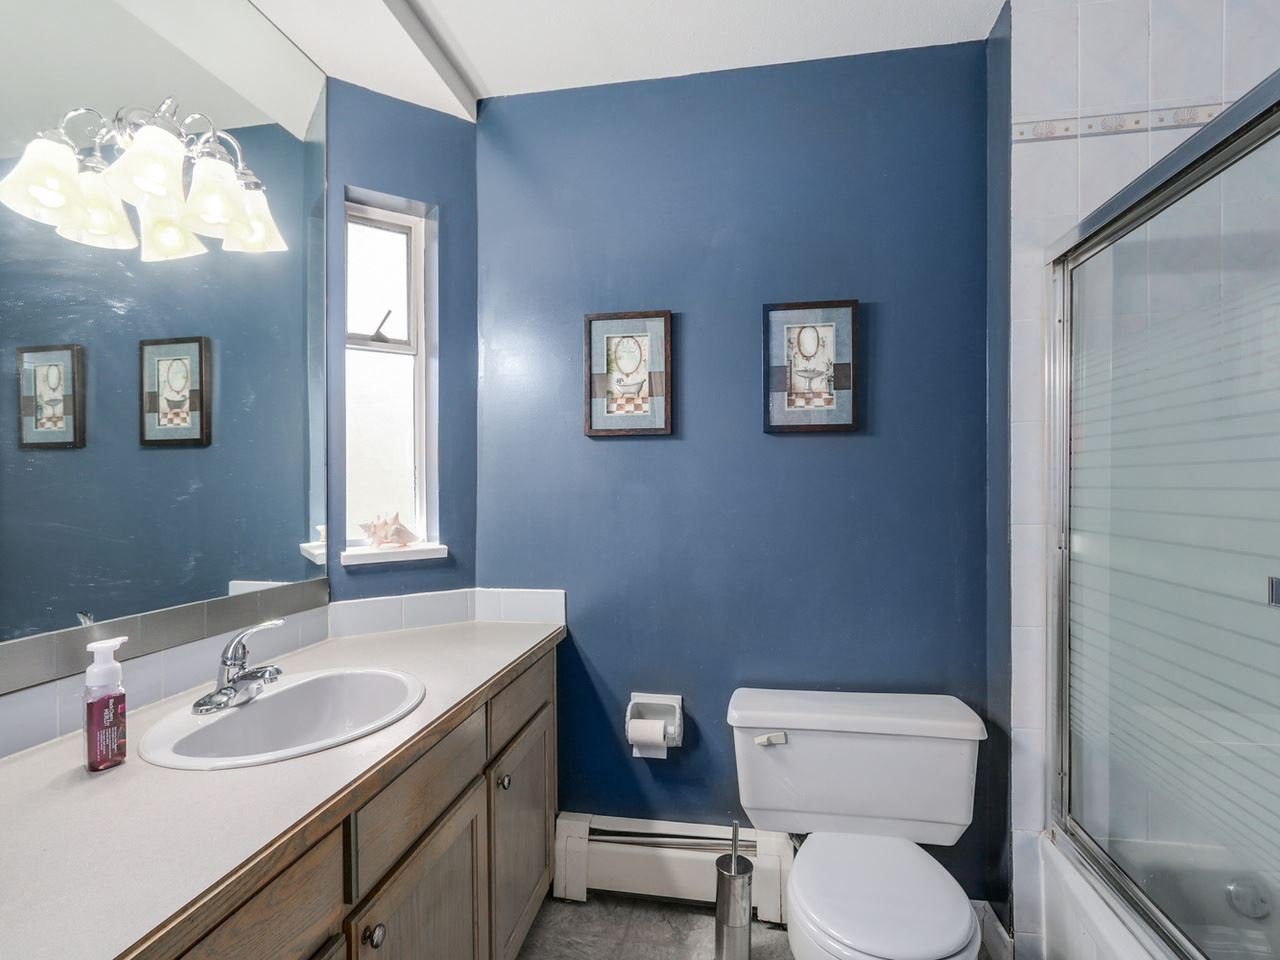 """Photo 17: Photos: 2559 BLUEBELL Avenue in Coquitlam: Summitt View House for sale in """"SUMMITT VIEW"""" : MLS®# R2064204"""